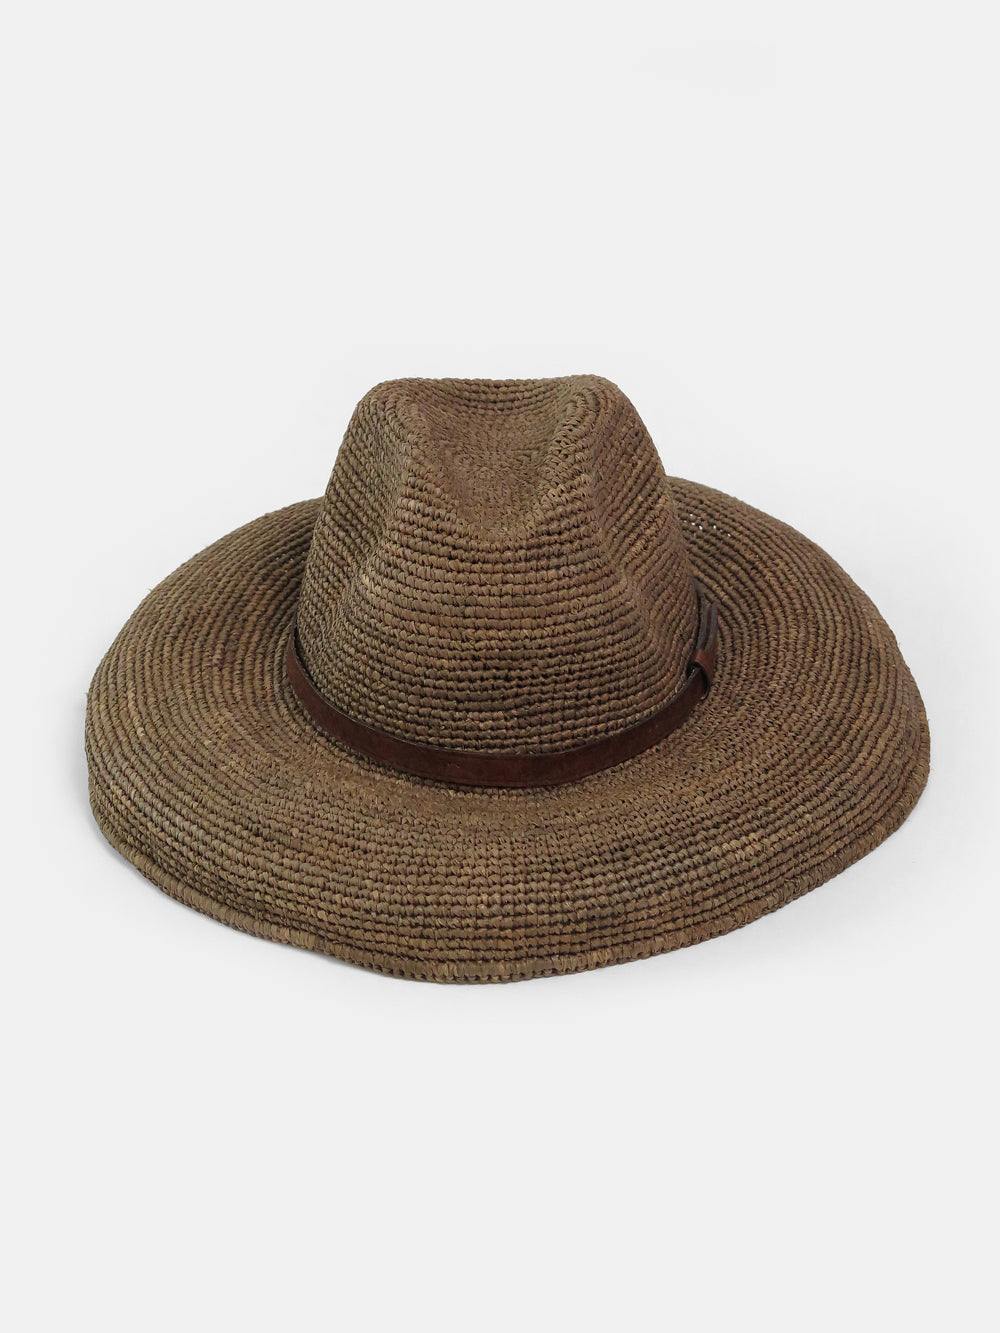 ibeliv safari hat in dark tea